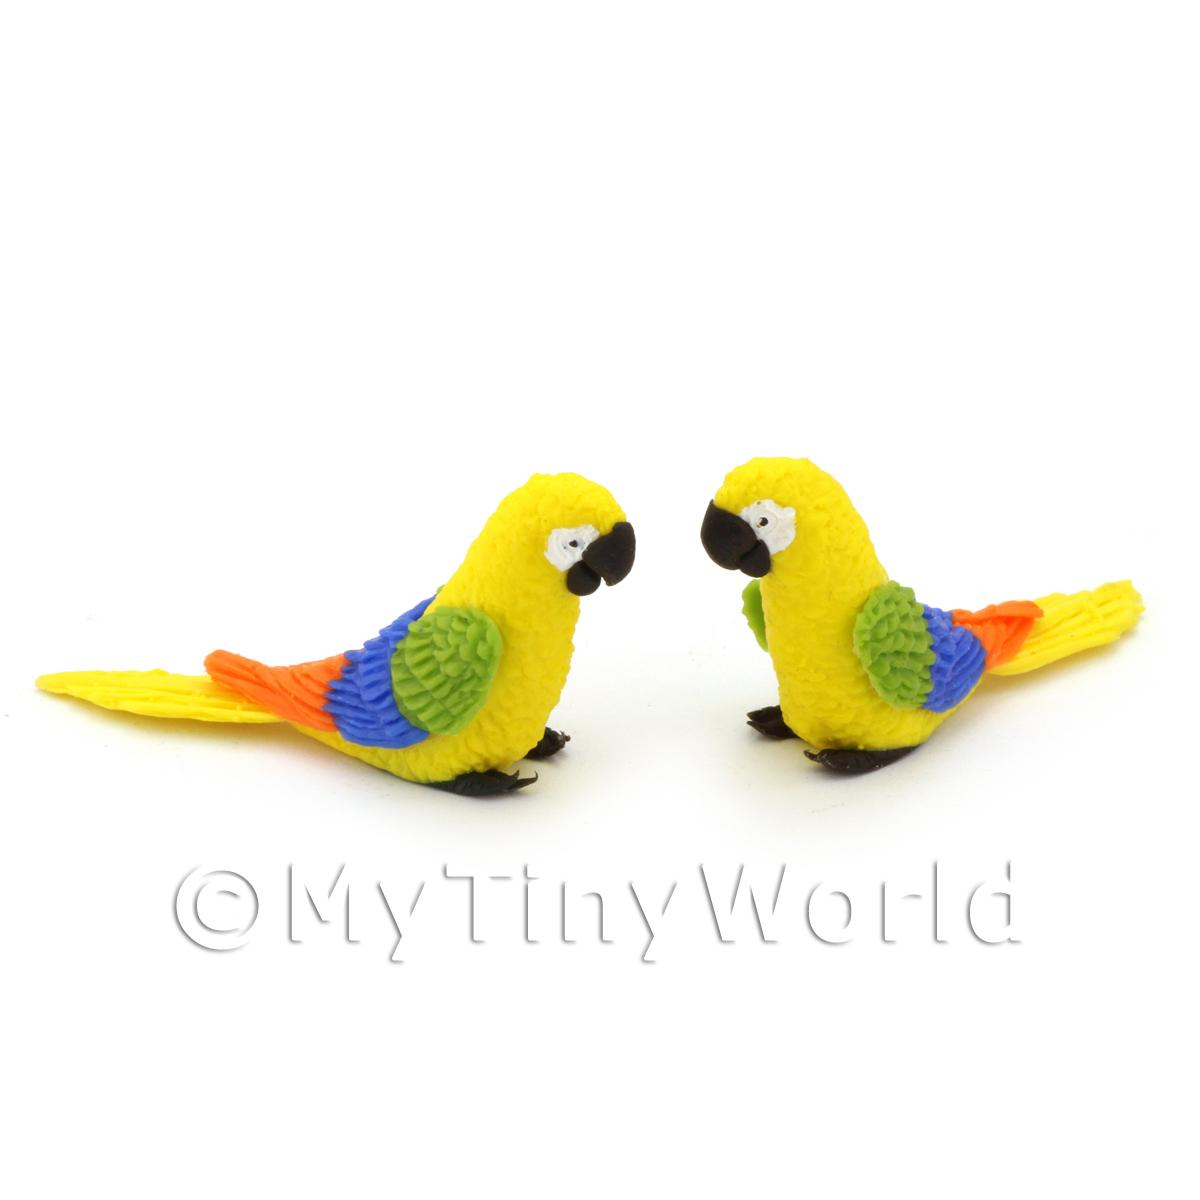 2 Yellow Dolls House Miniature Parrots with Multi-coloured Wings